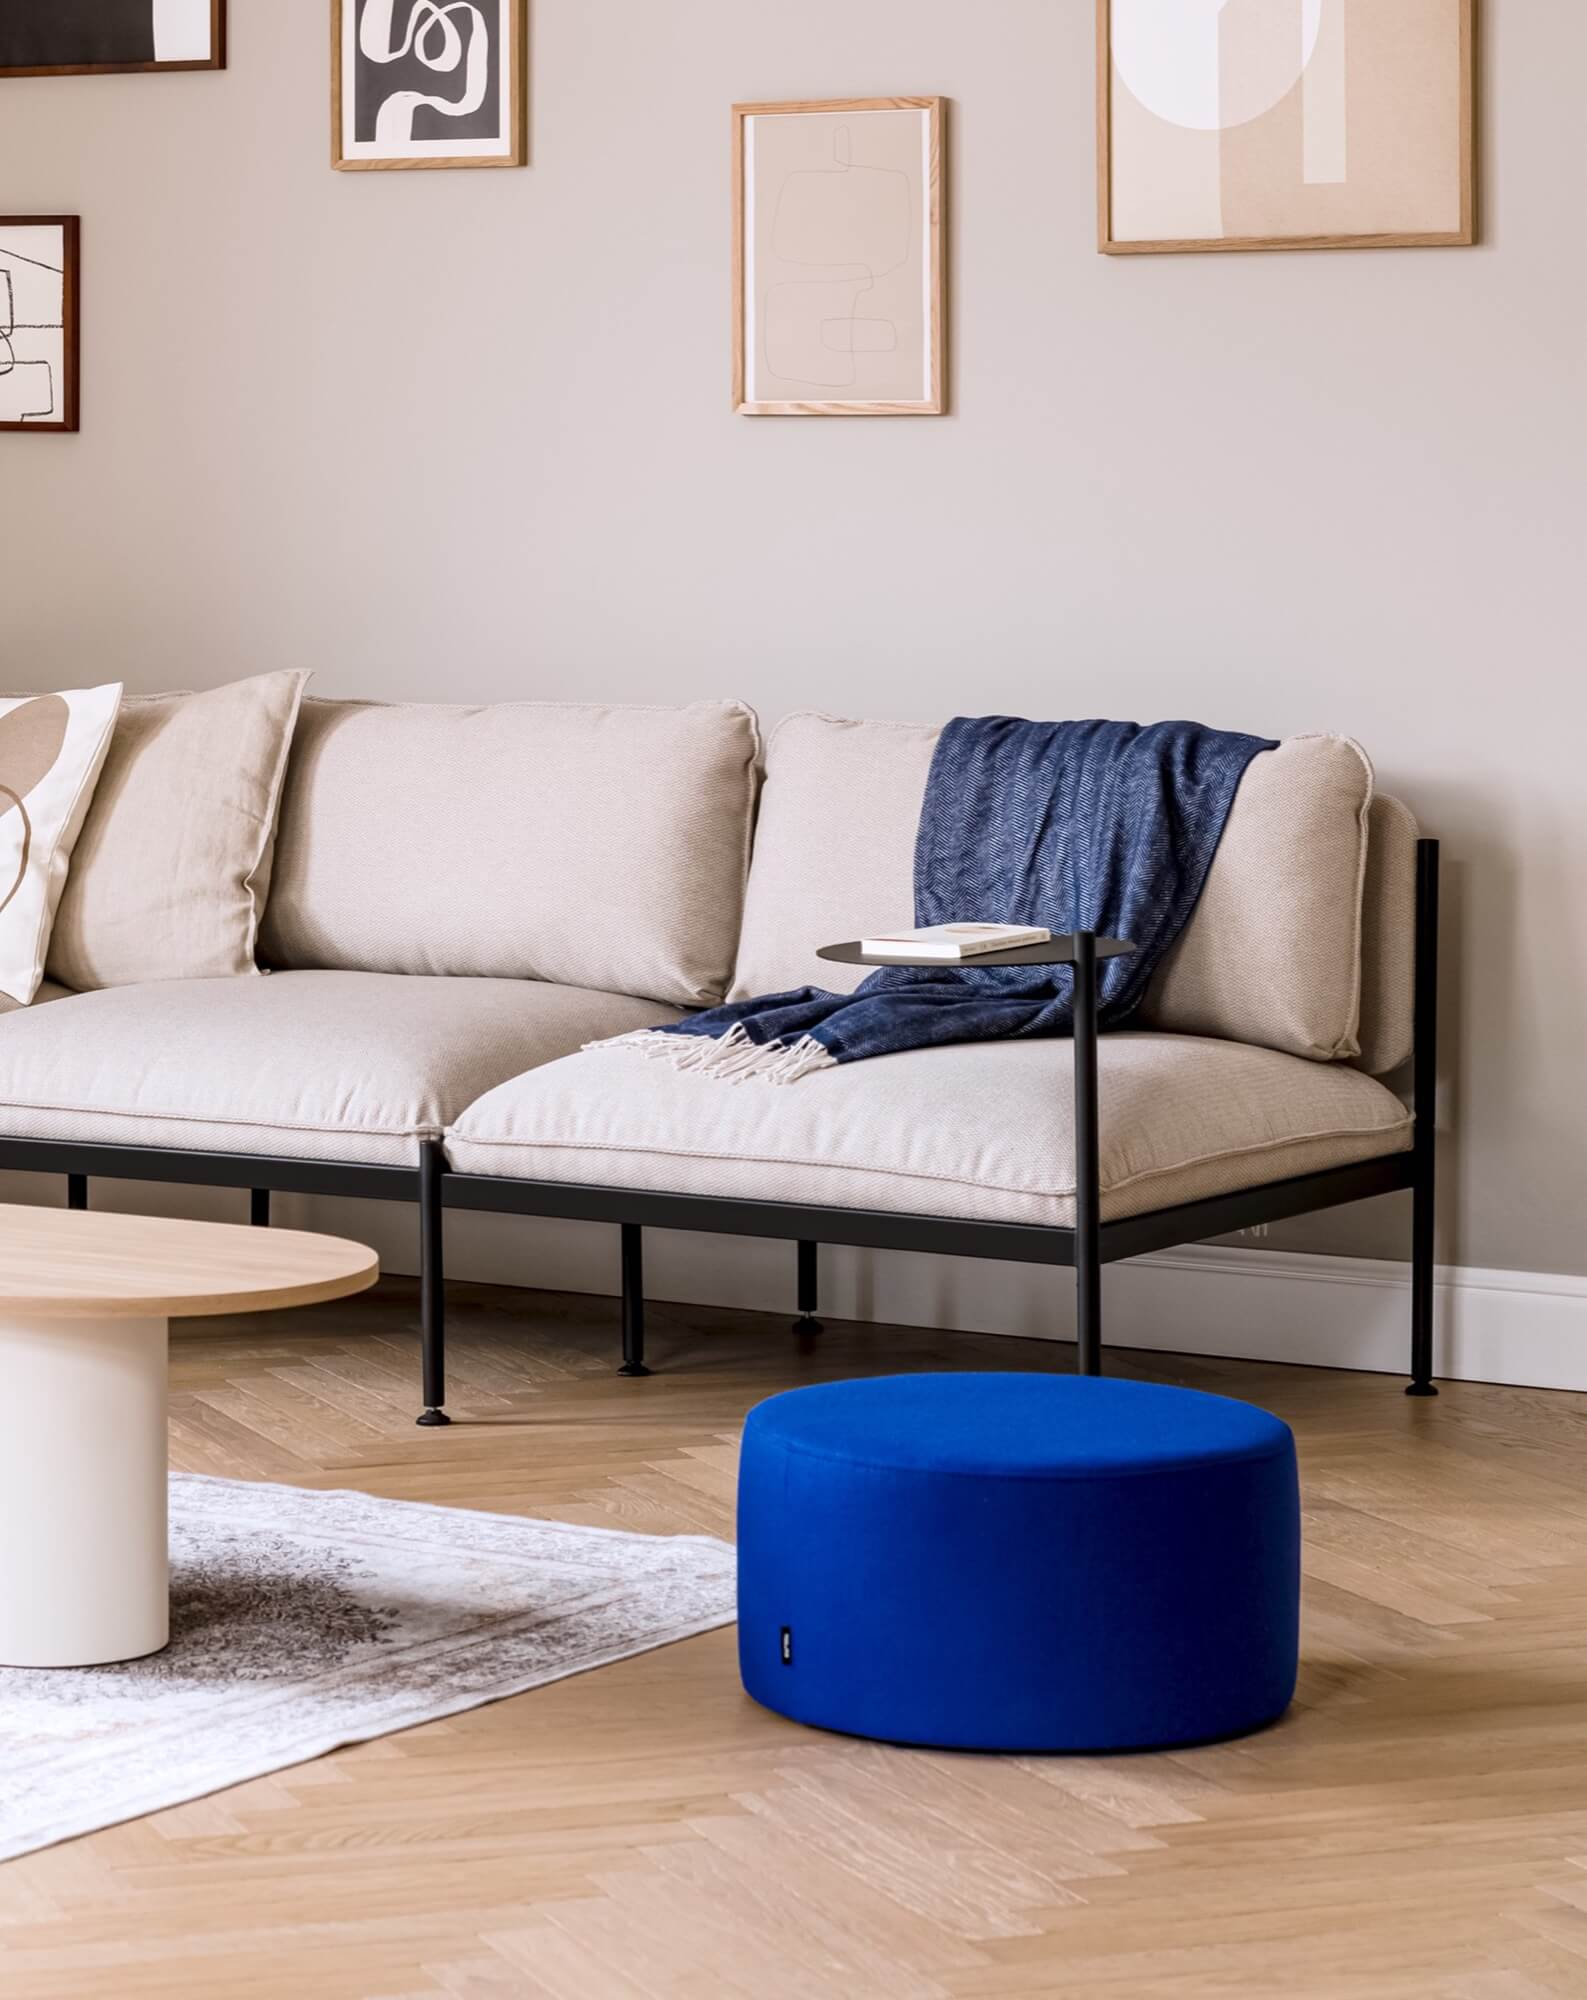 Furnitures for your home - noo.ma